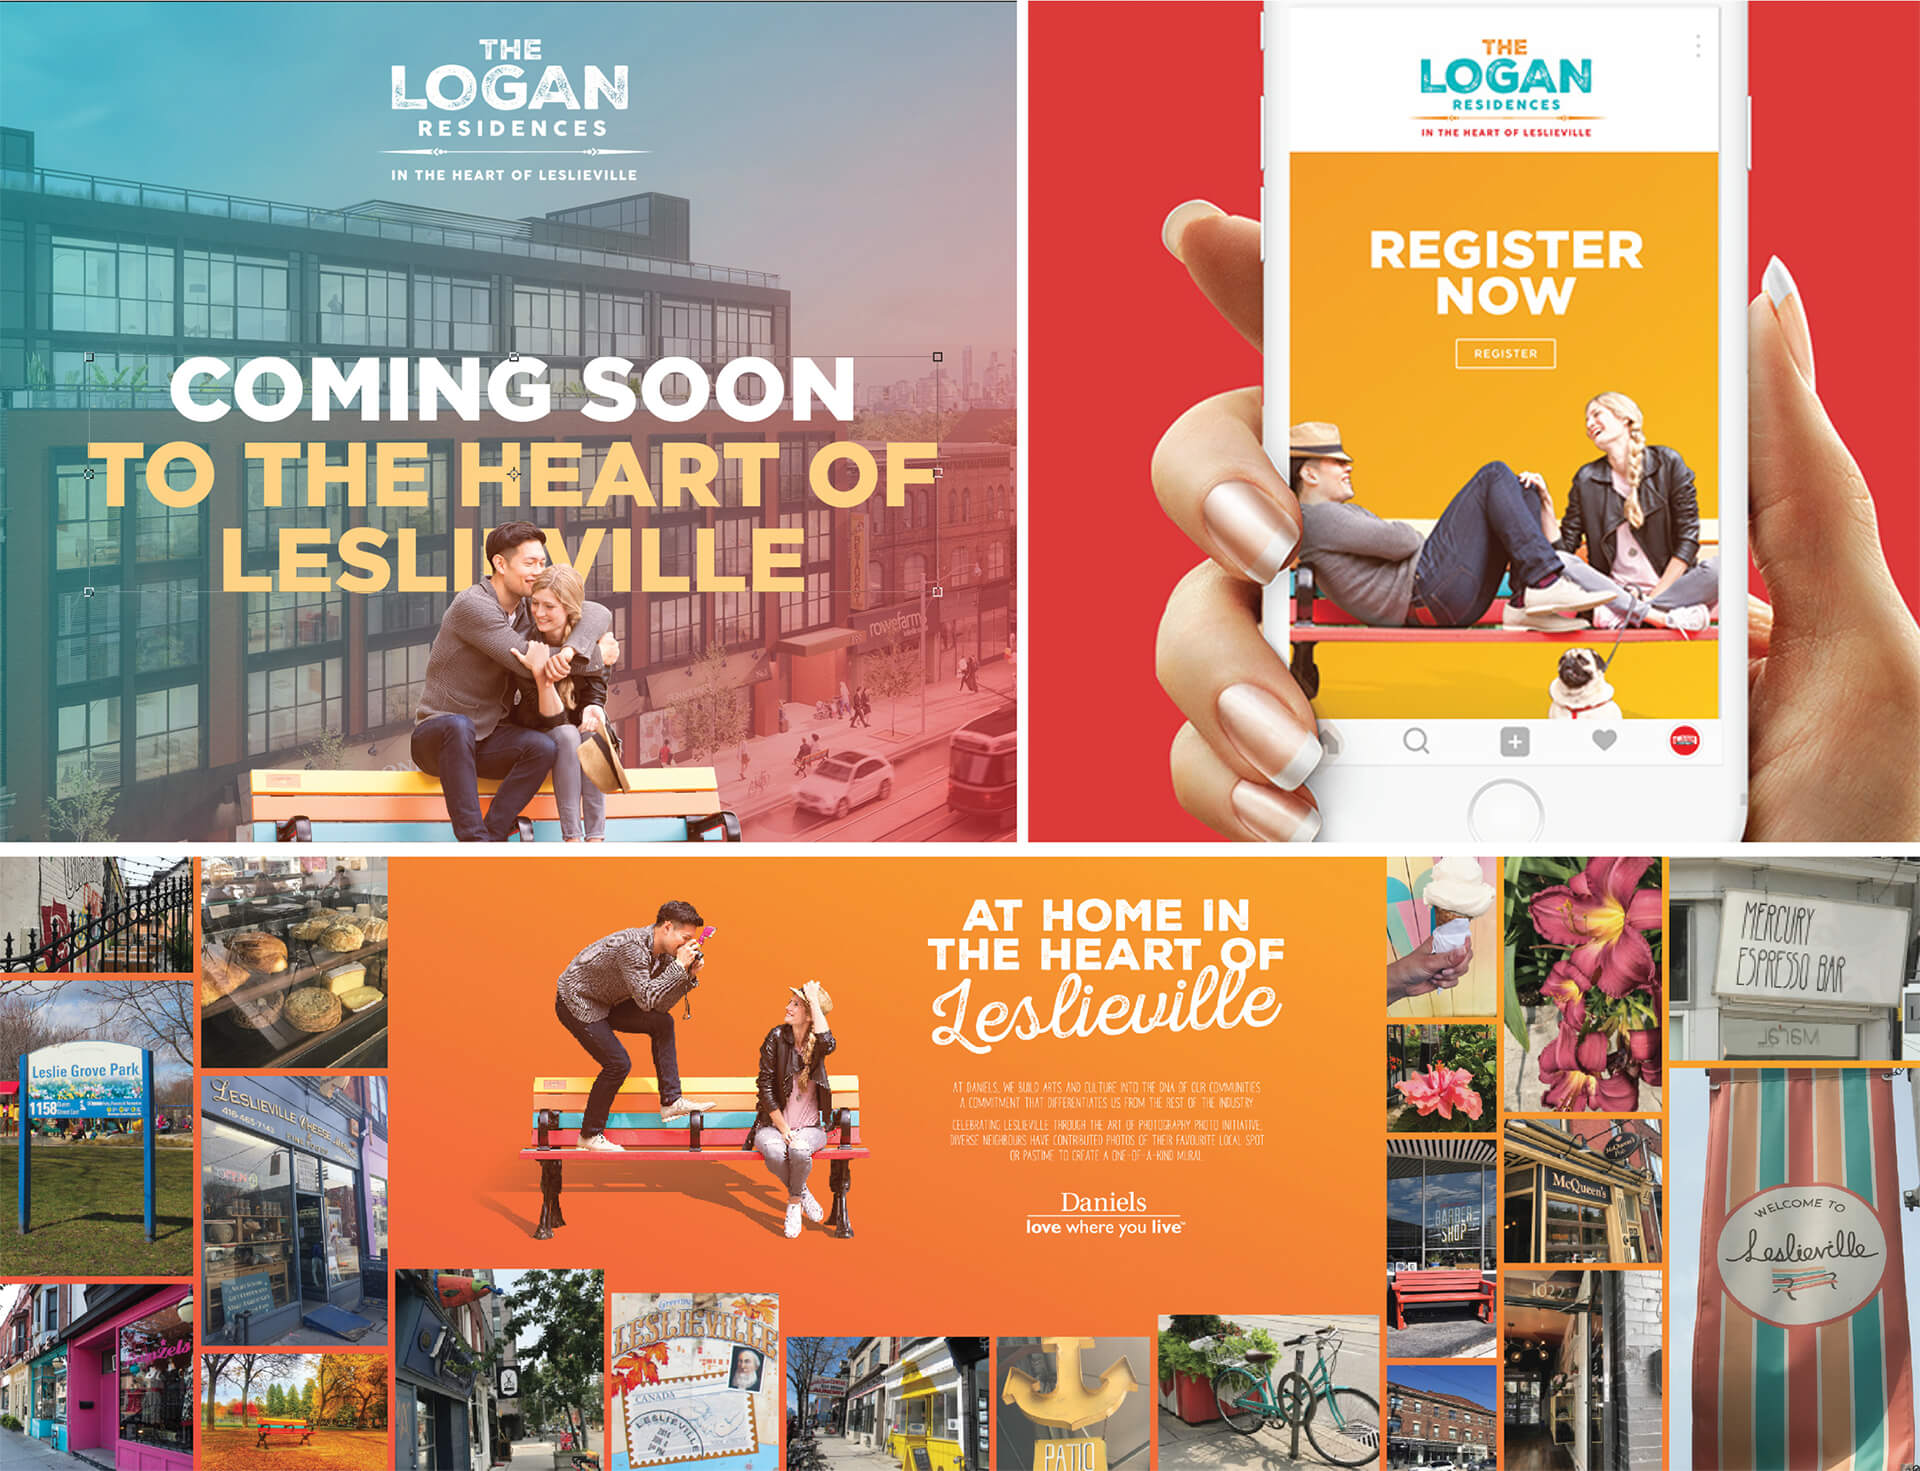 The Logan Residences